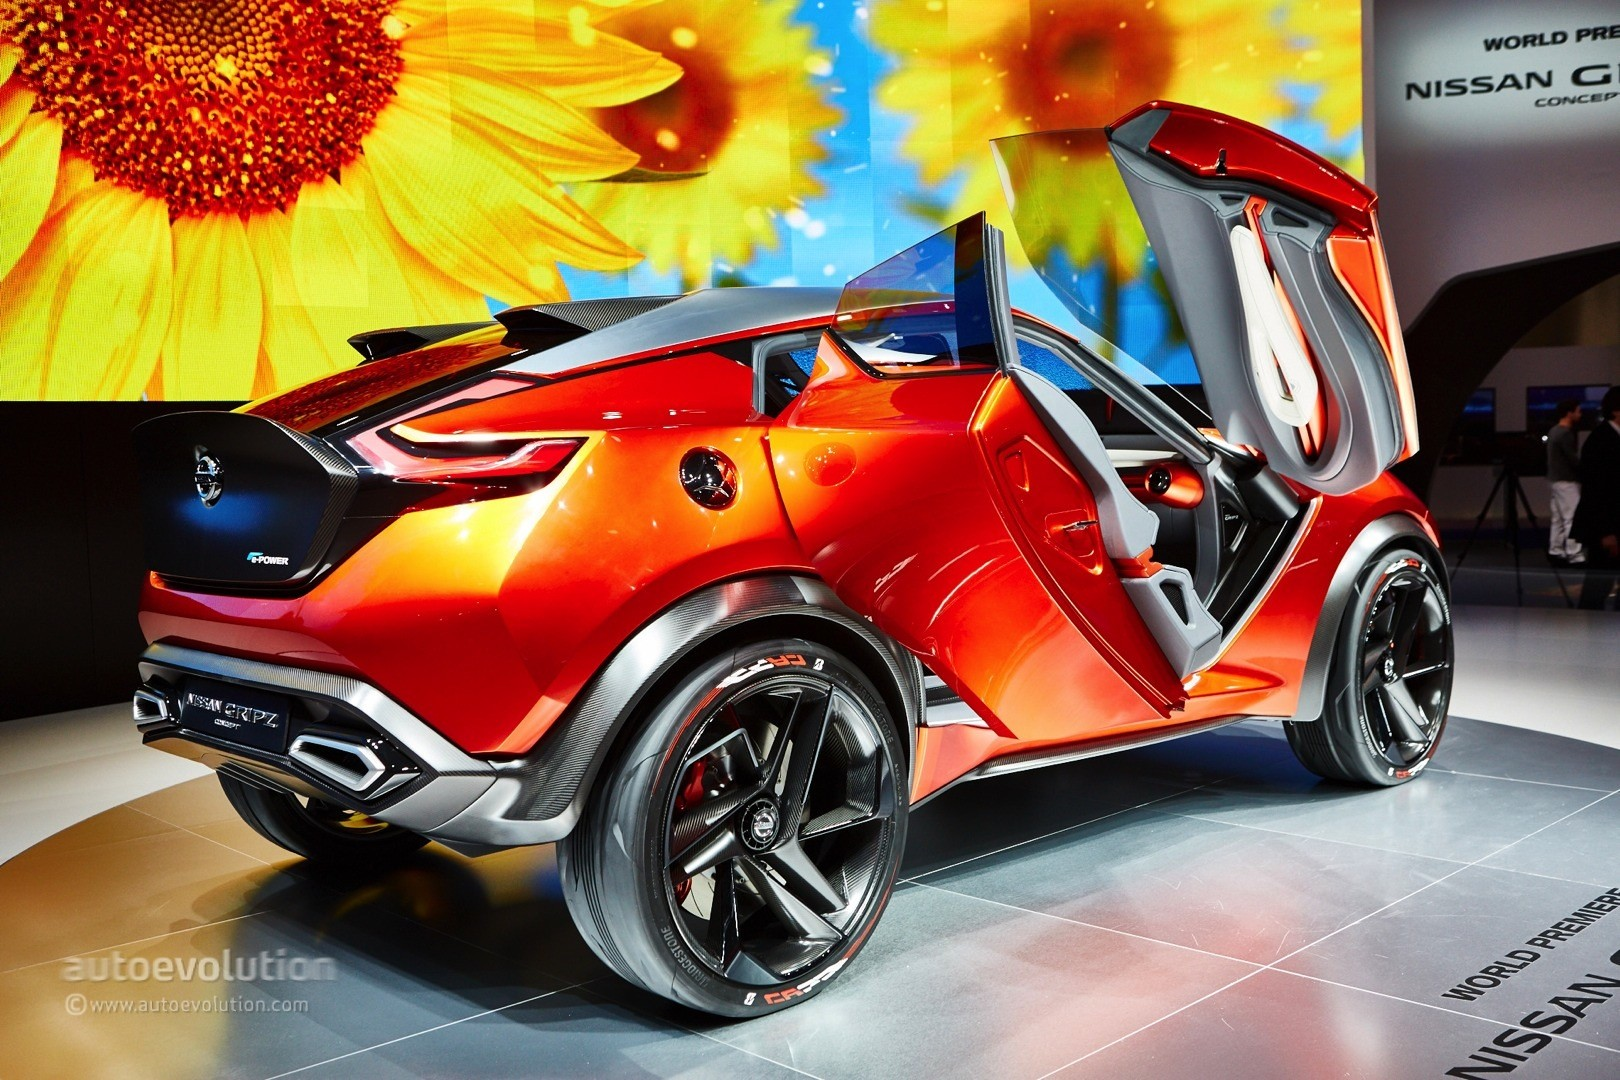 2020 Nissan Juke Might Not Have Diesel Engines - autoevolution